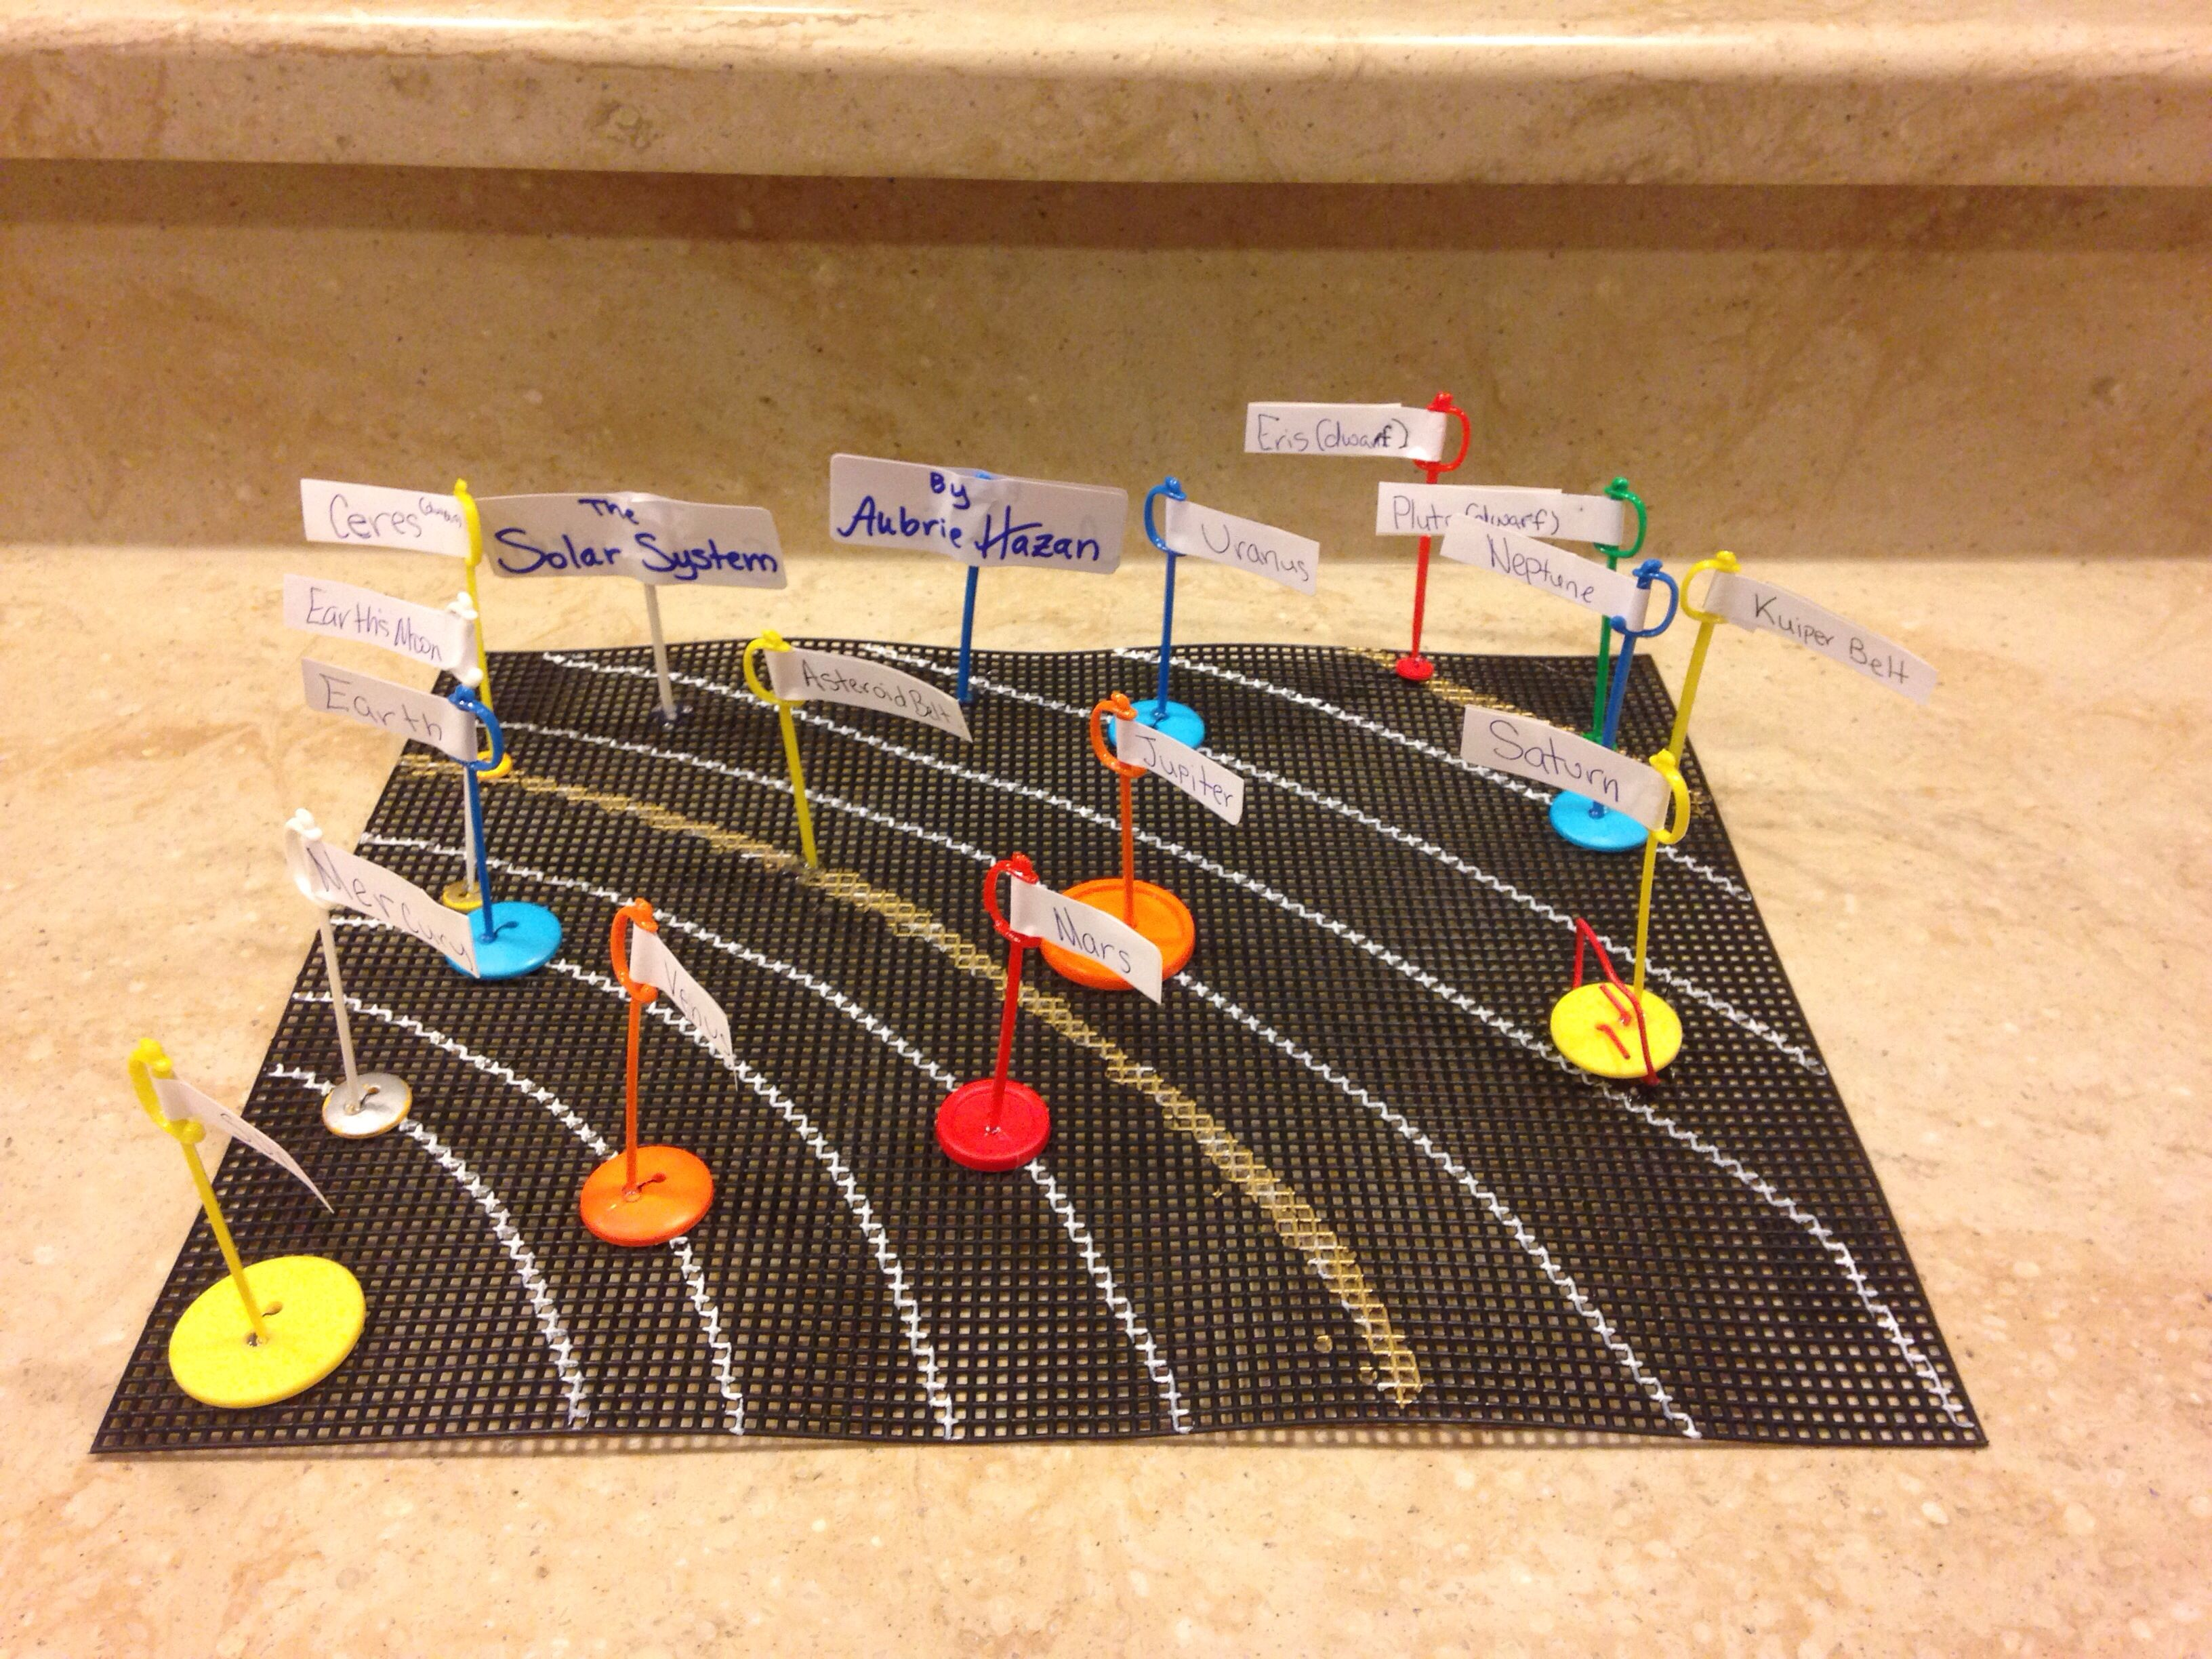 small resolution of solar system diagram for school project made our of a plastic canvas buttons